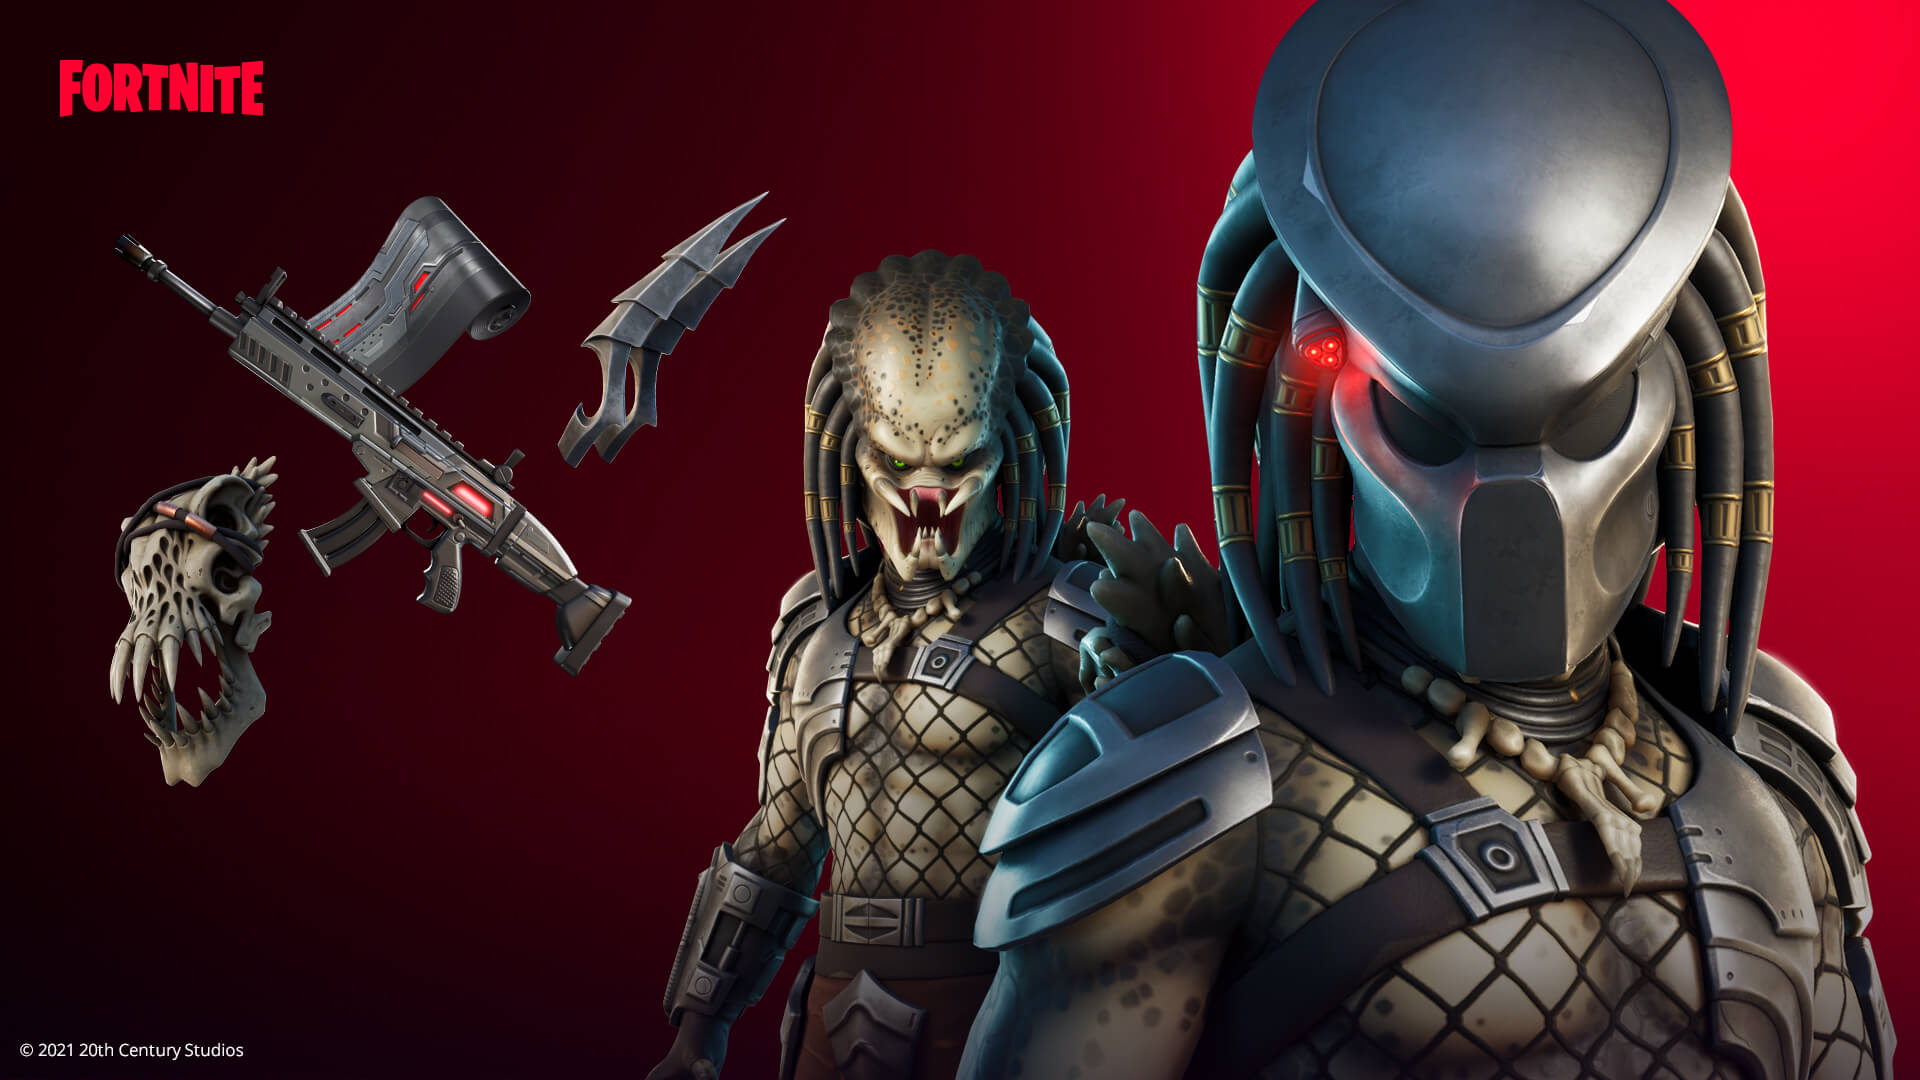 Légendes de la science-fiction, le Predator, le Terminator T-800 et Sarah Connor sont arrivés à Fortnite.